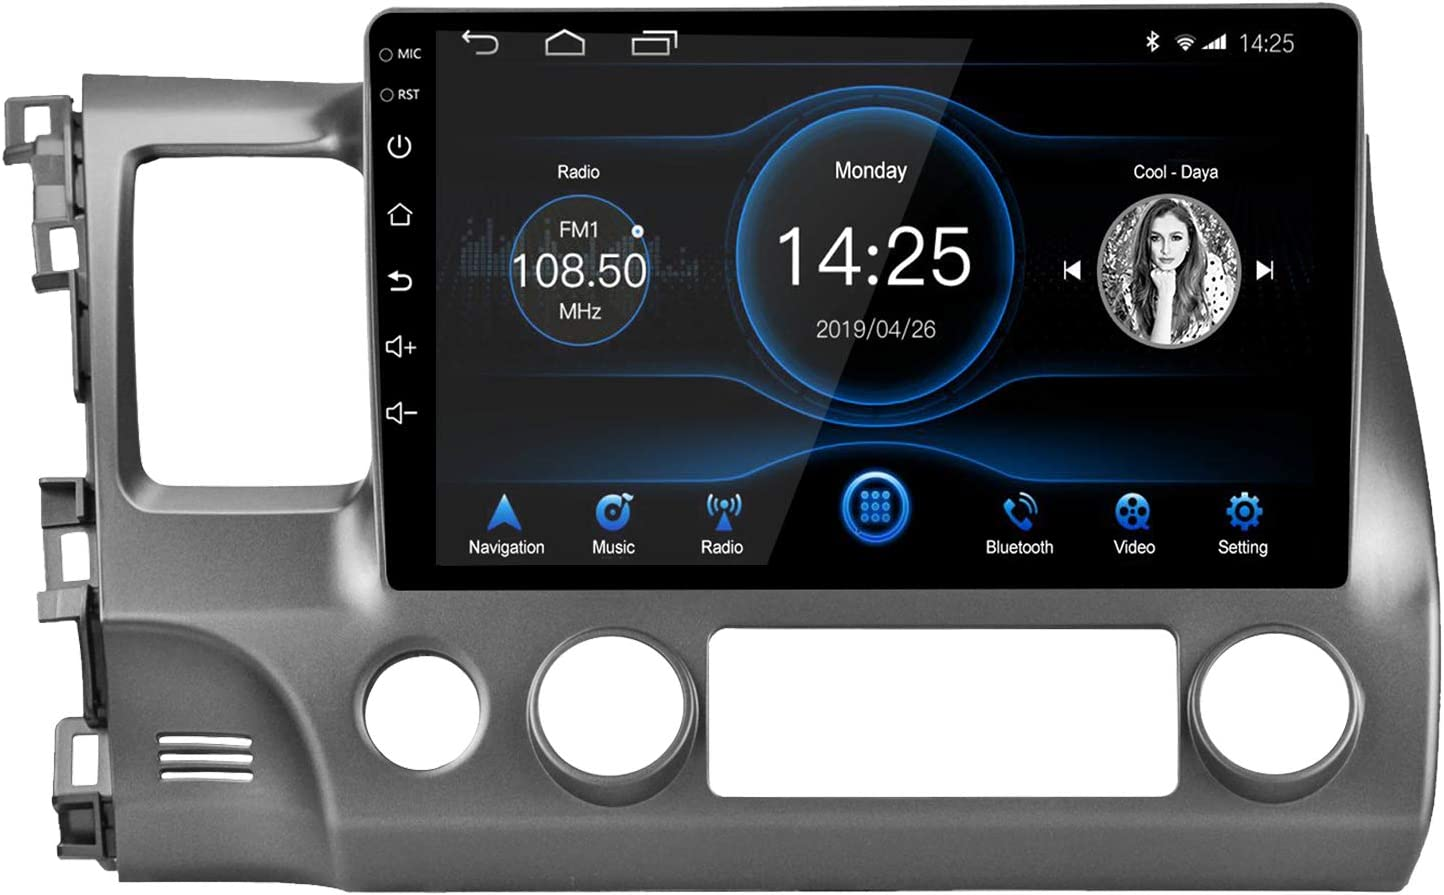 LEXXSON Android 10.1 Car Radio Stereo 9 inch Capacitive Touch Screen High Definition GPS Navigation Bluetooth USB Player 2G DDR3 16G NAND Memory Flash for Toyota RAV 4 2007-2012